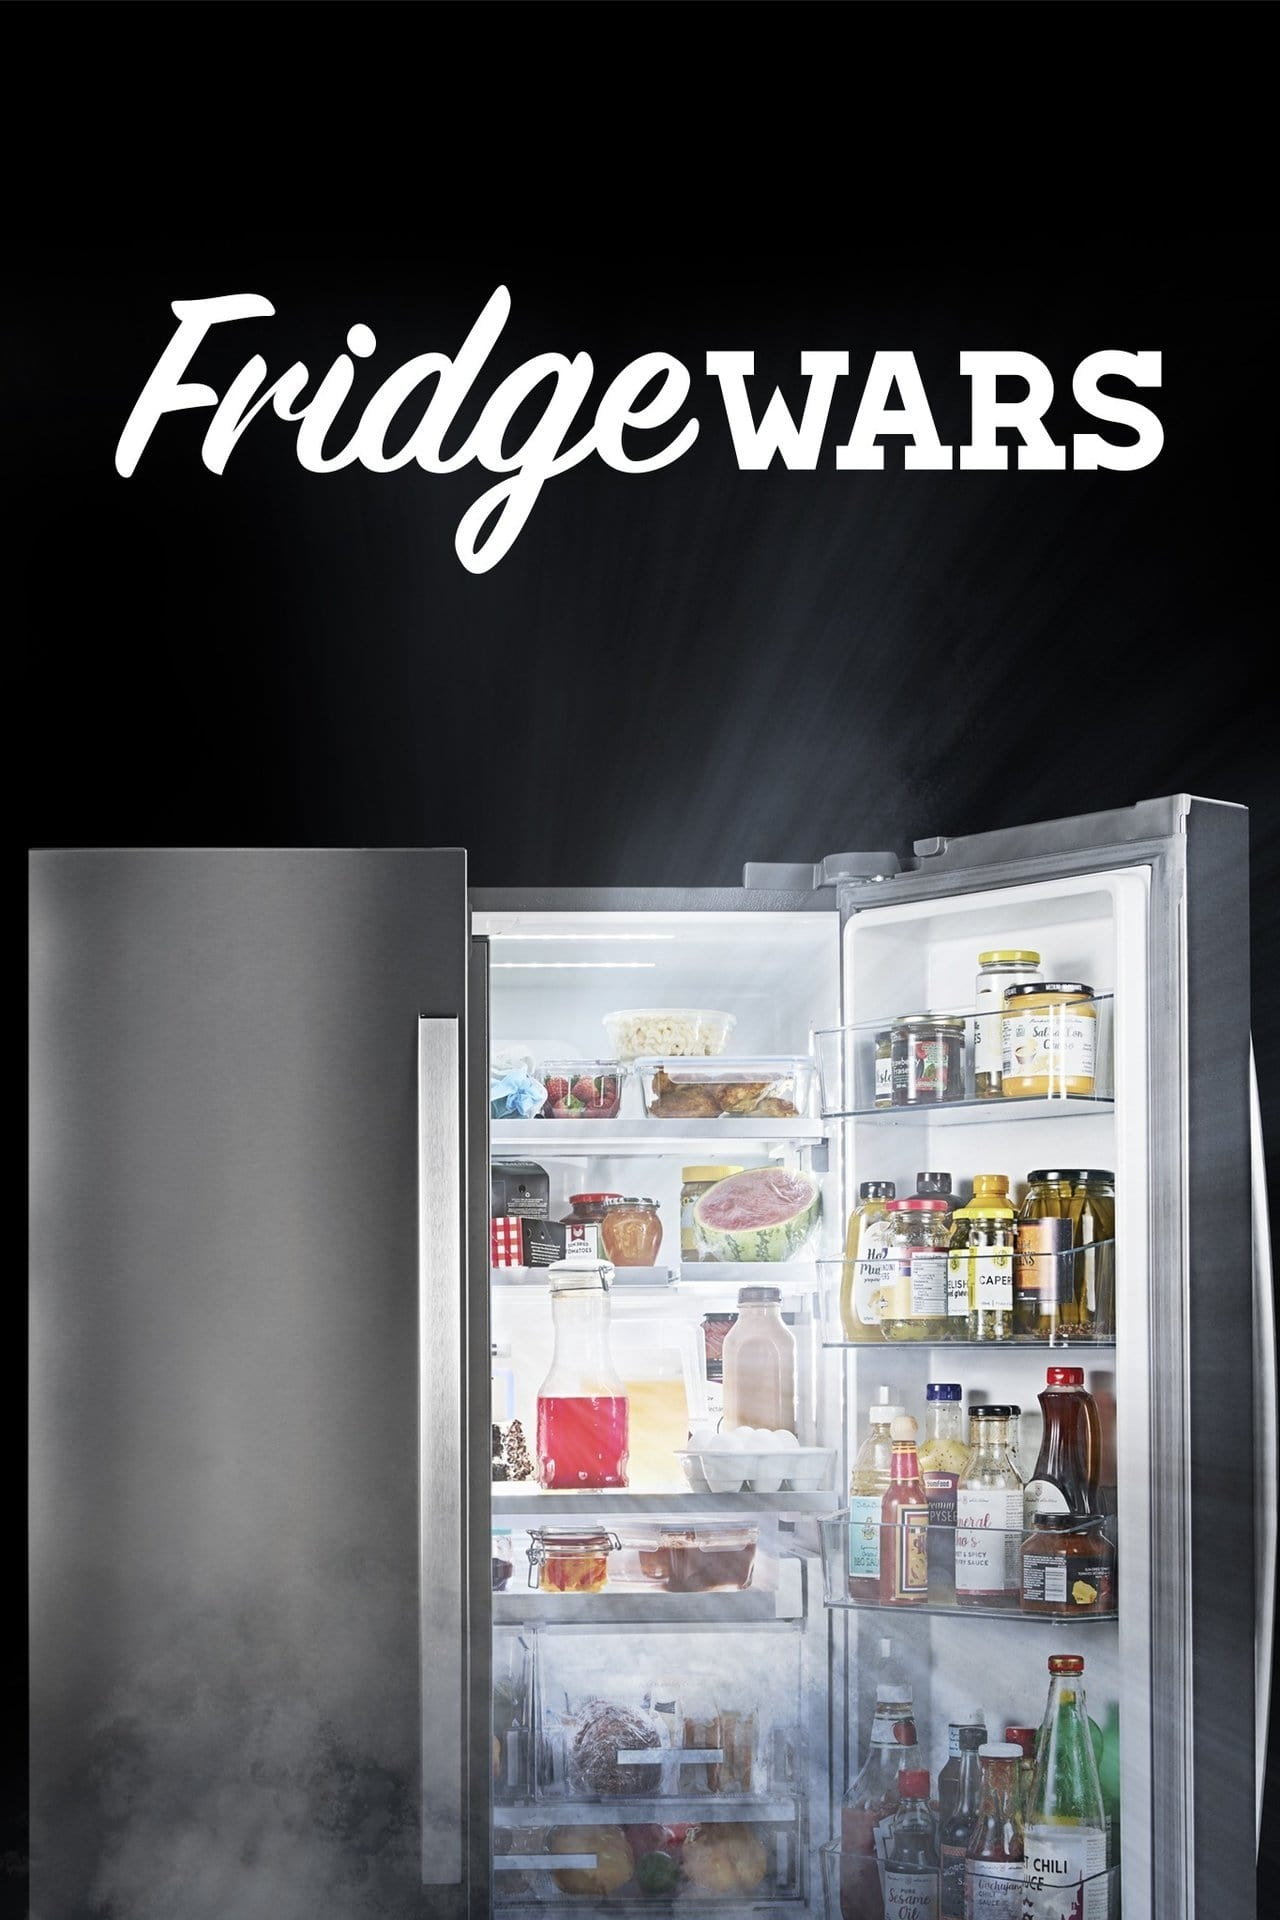 Fridge Wars TV Shows About Cooking Competition